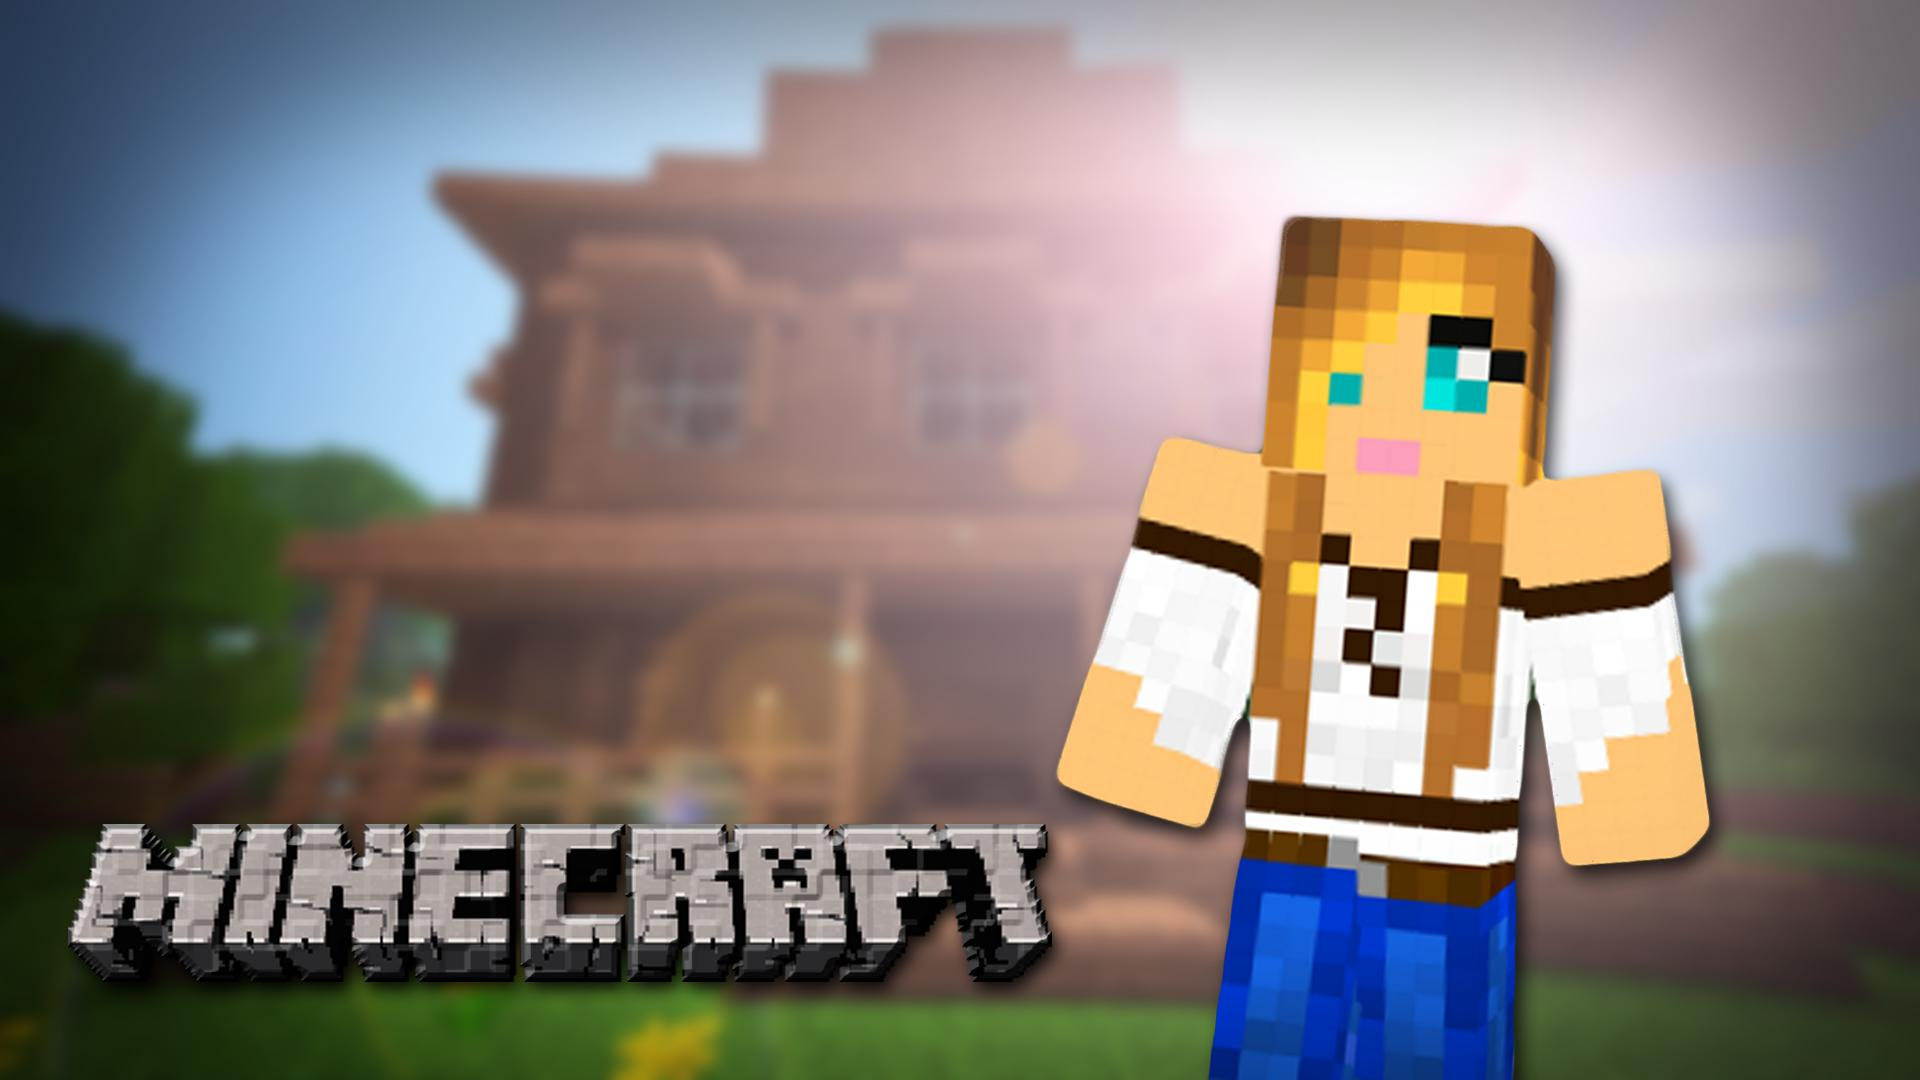 1920x1080 43+] Minecraft Wallpapers for Girls on WallpaperSafari